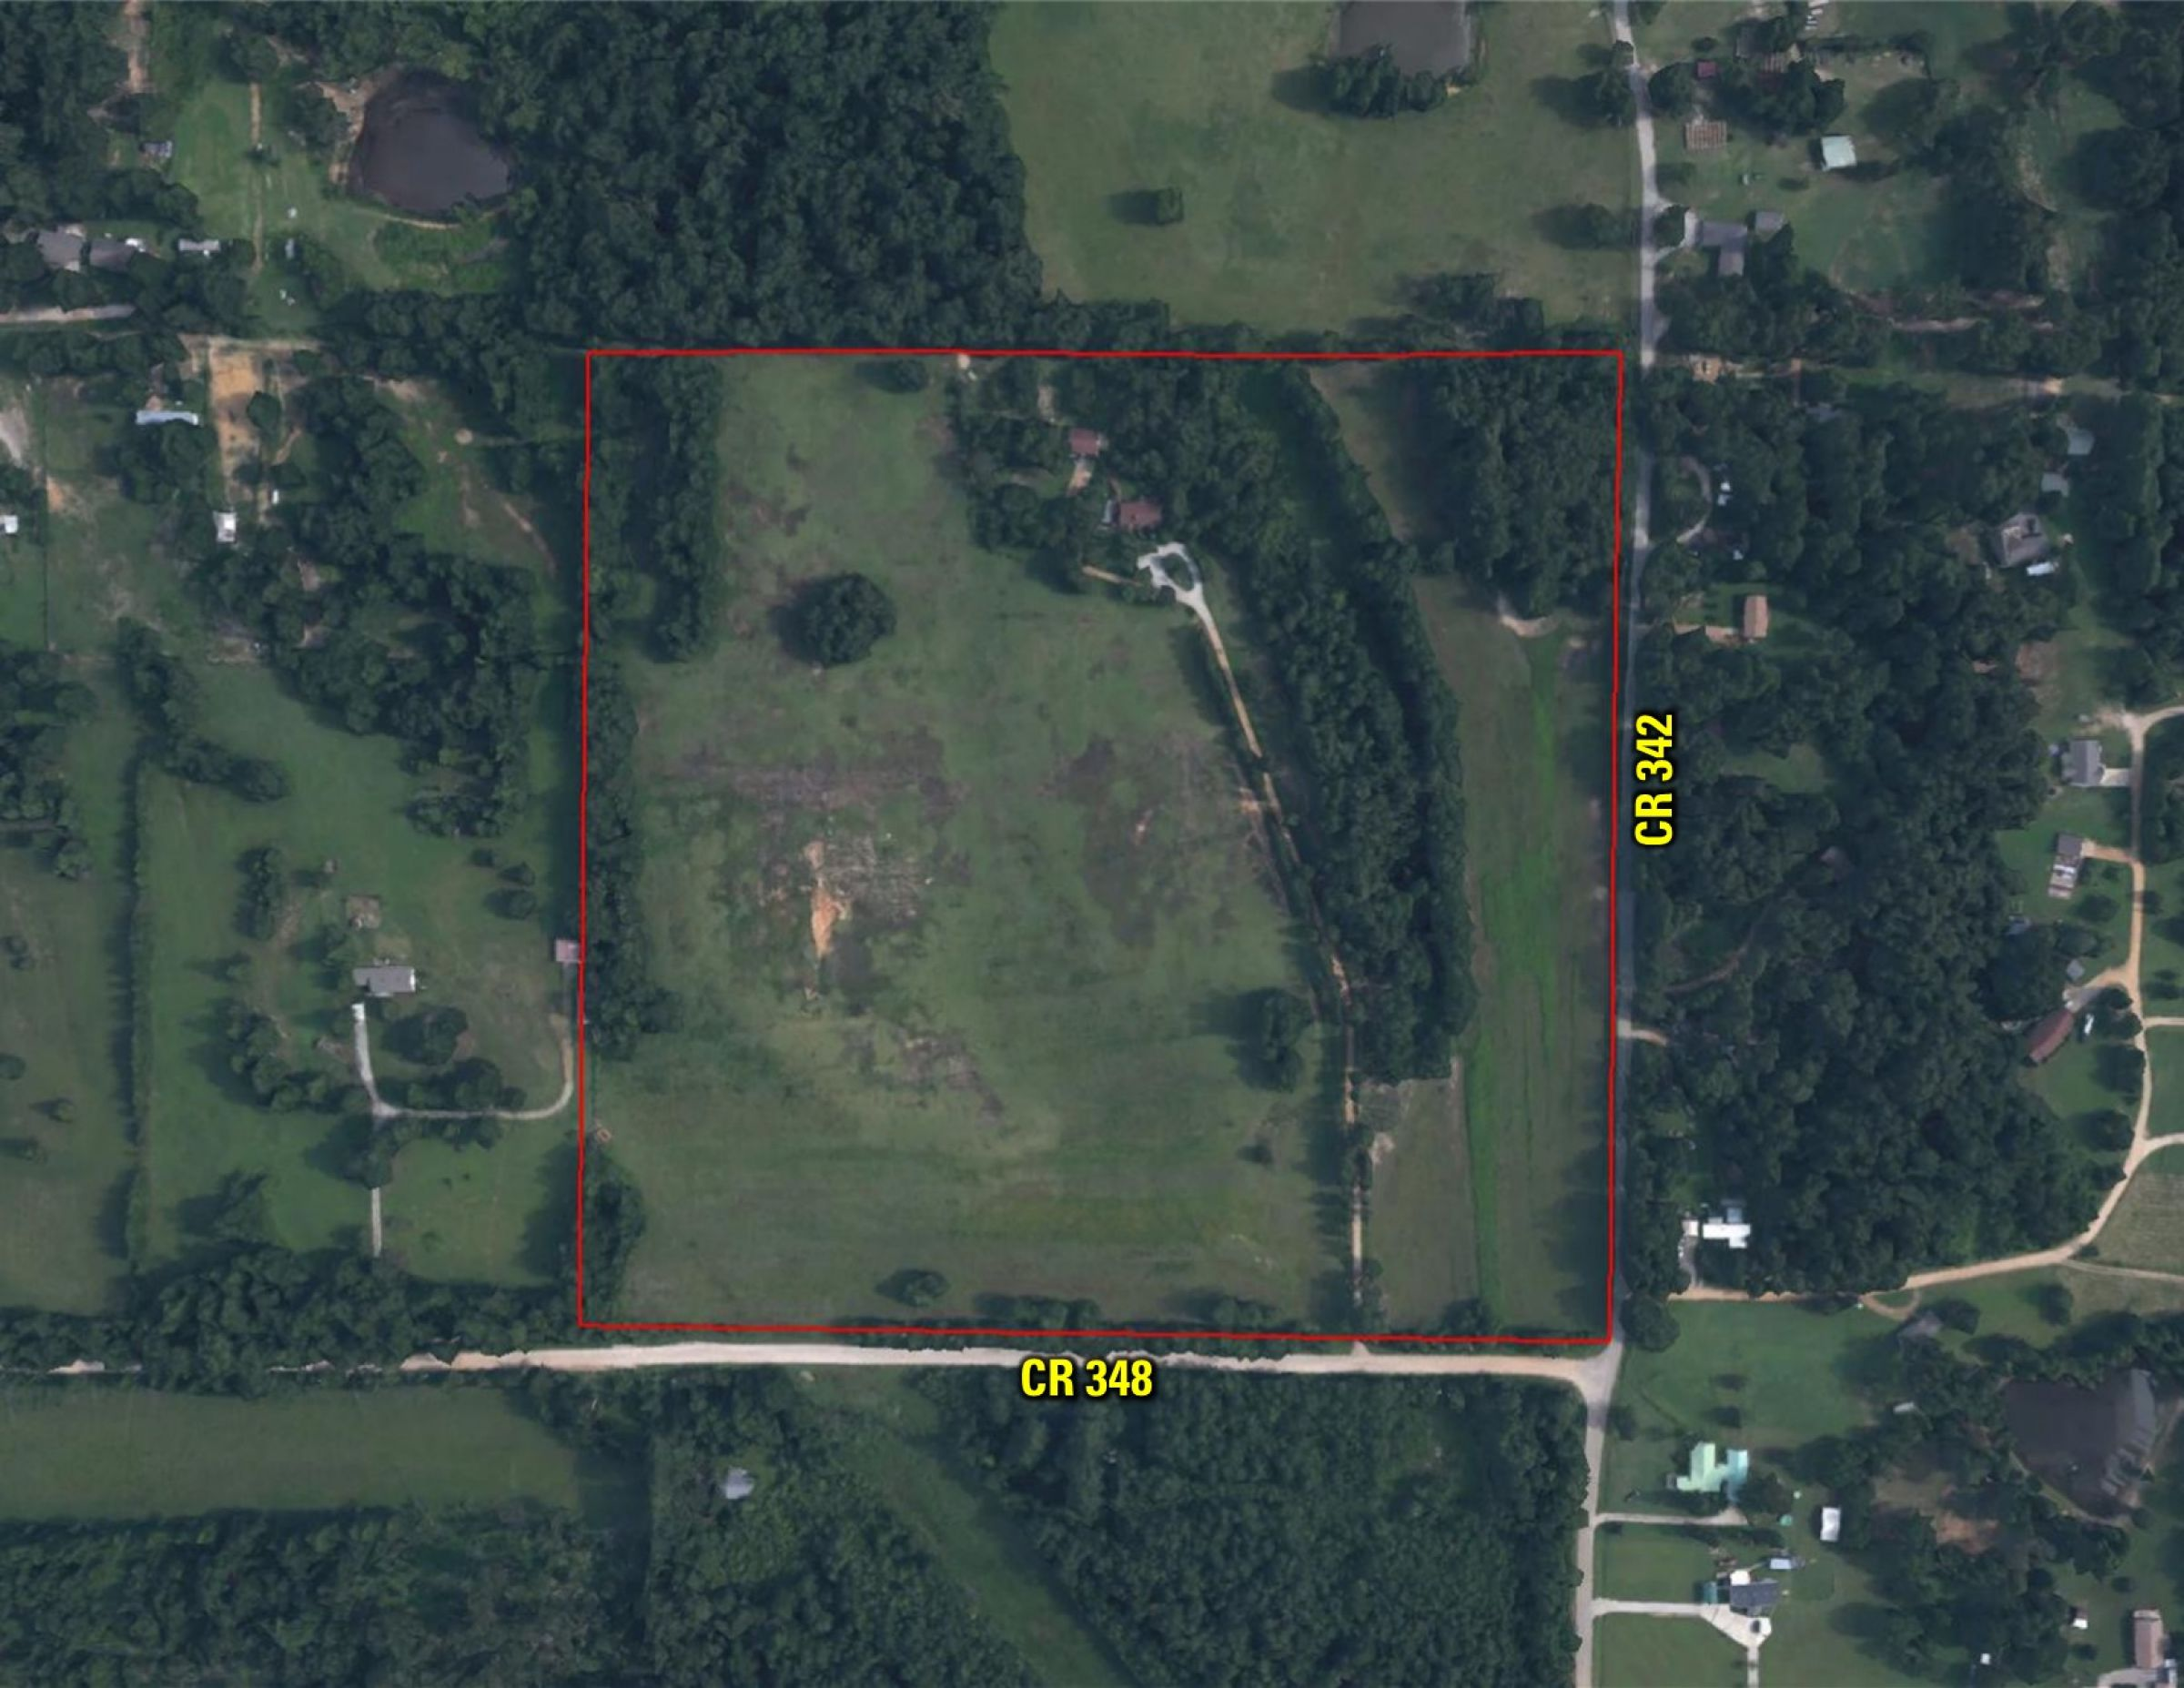 residential-land-craighead-county-arkansas-40-acres-listing-number-15005-0-2020-06-11-142211.jpg